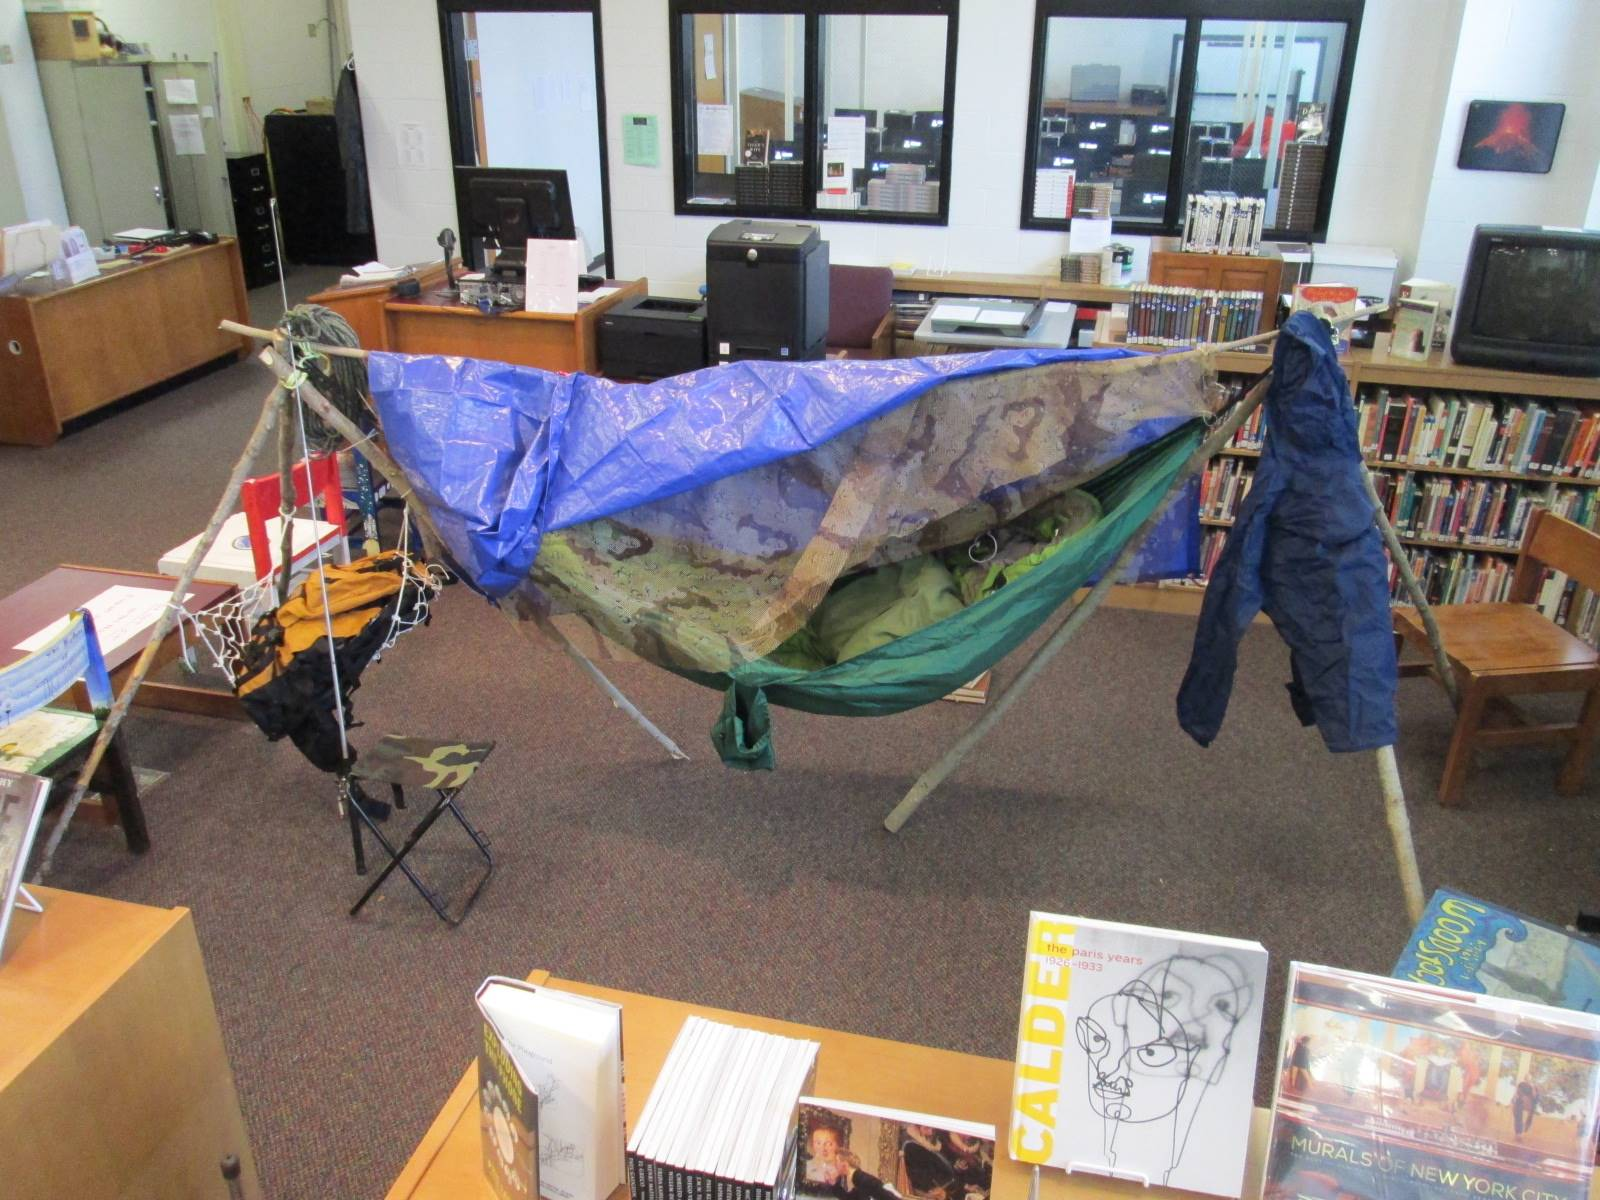 On My Own Time: student camping display in ACSLIB.